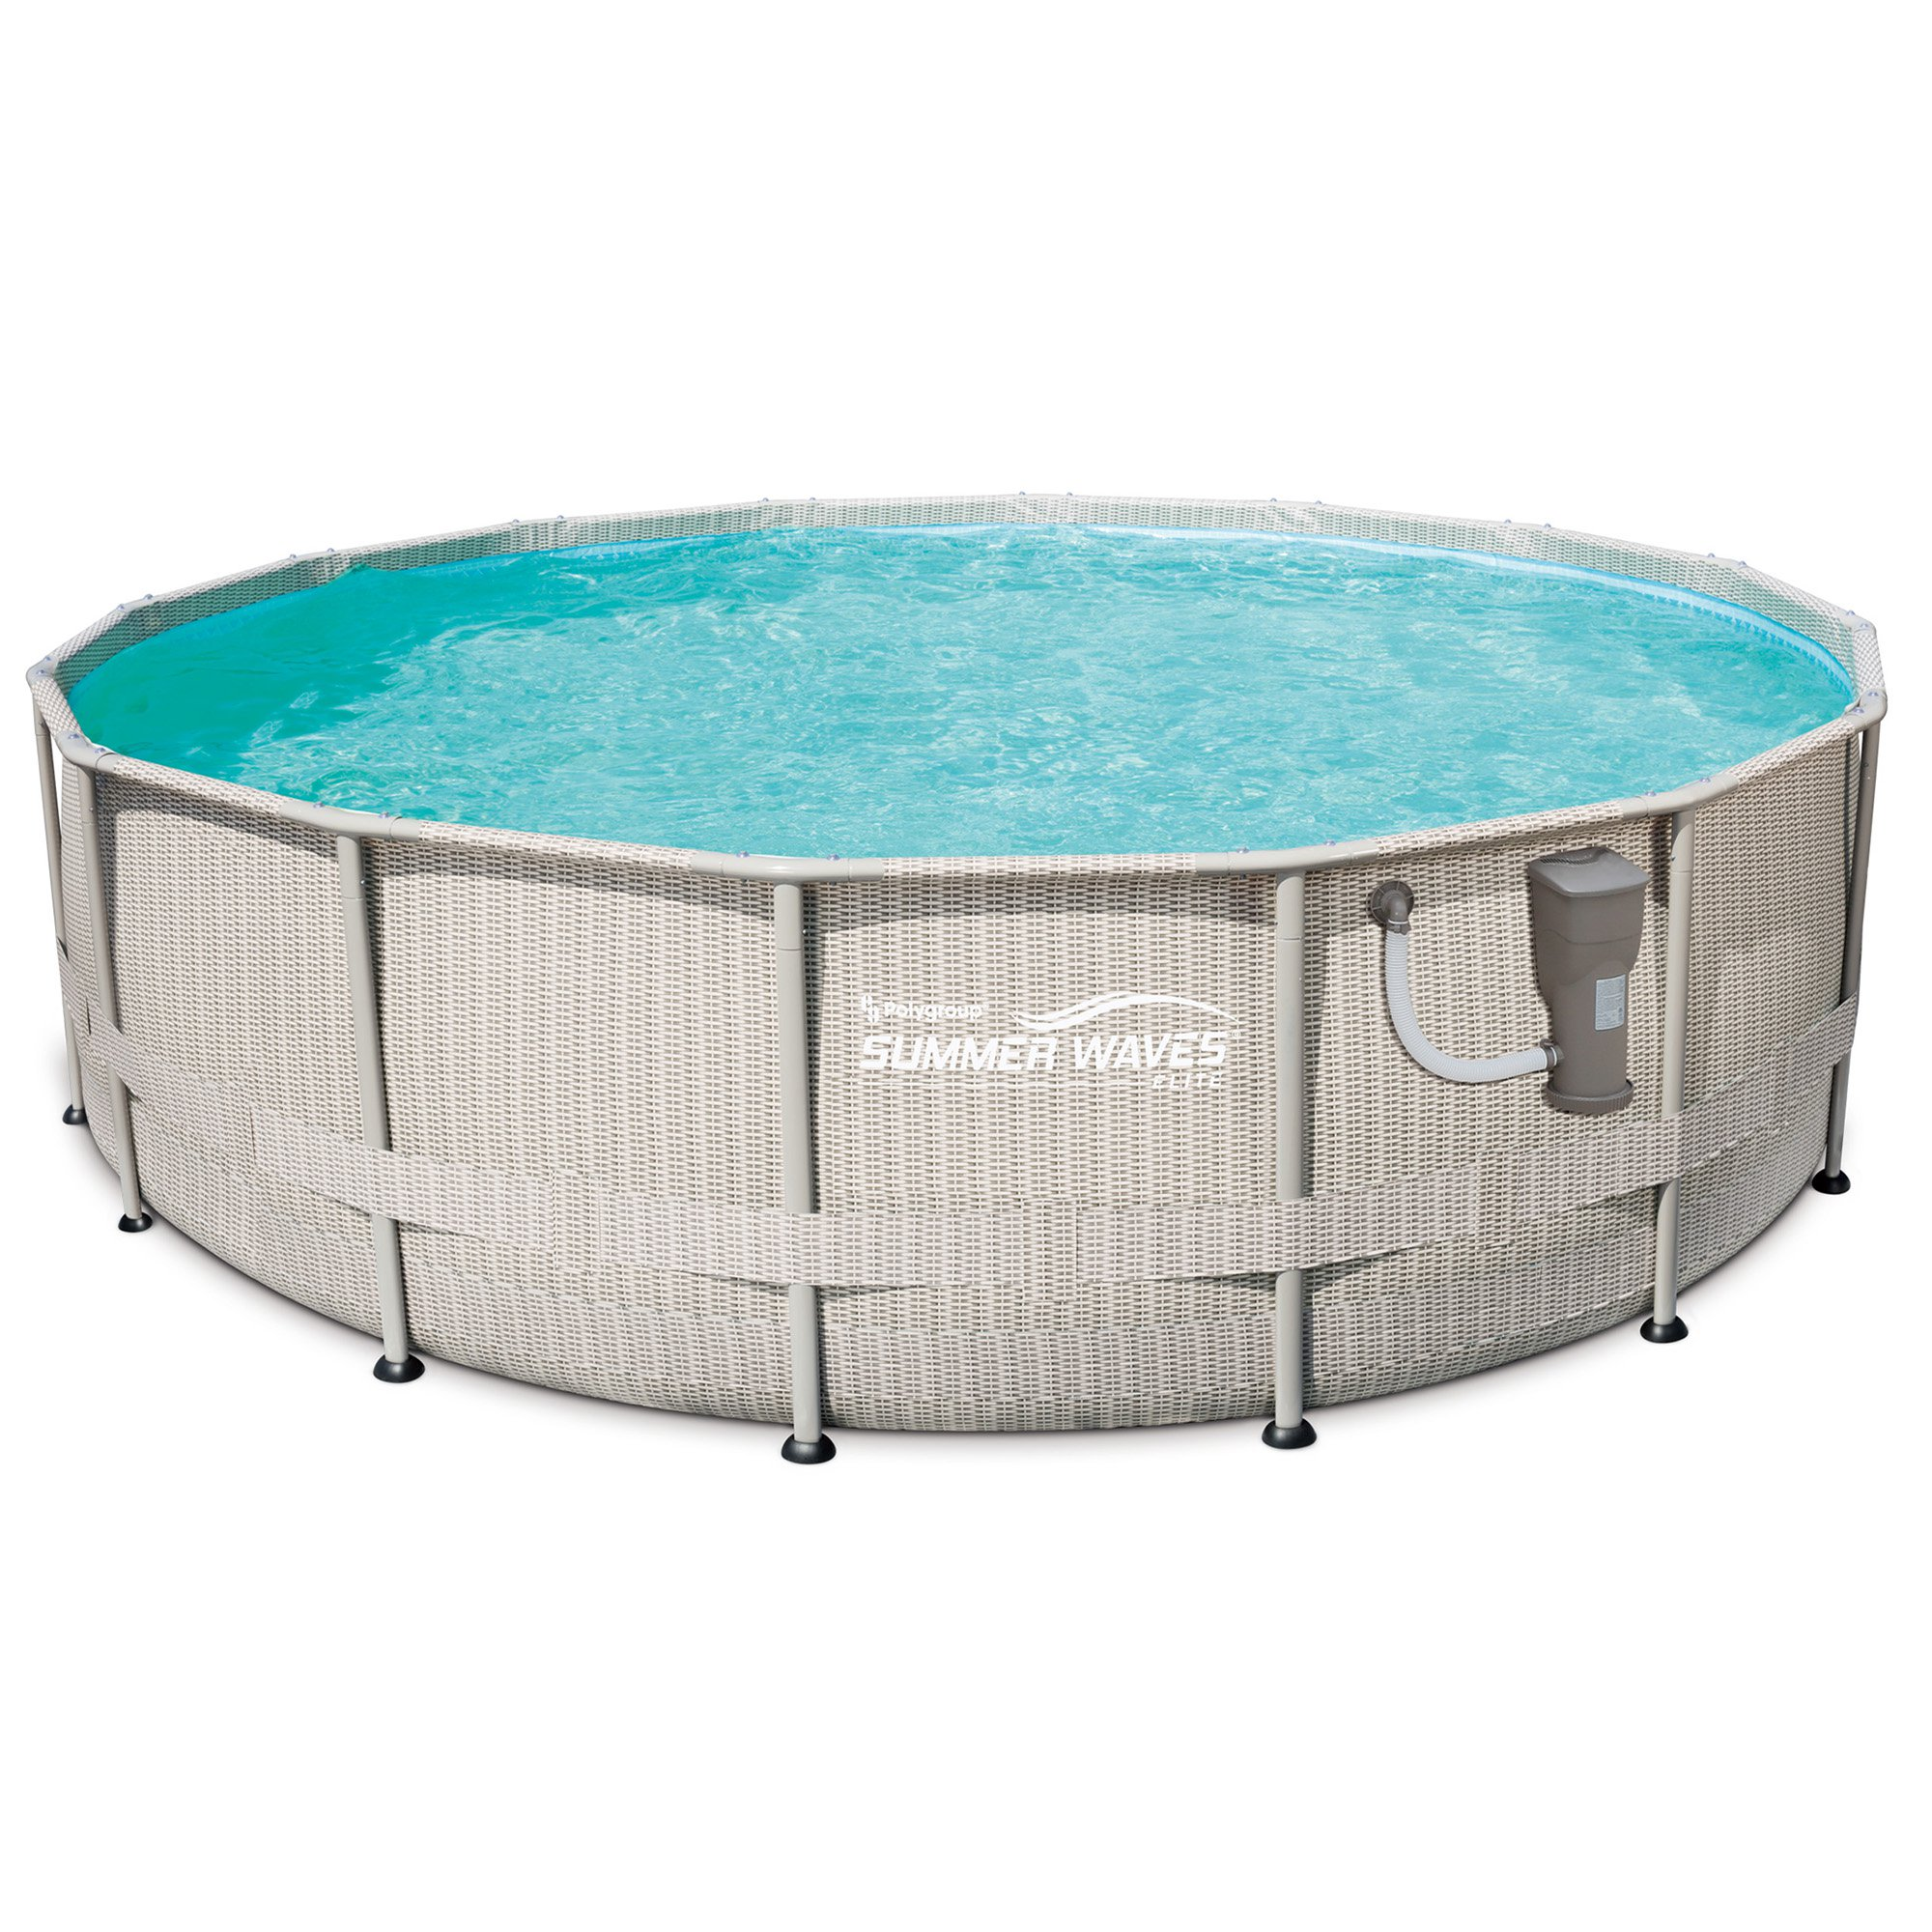 """Summer Waves 16' x 48"""" Elite Frame Above Ground Swimming Pool Set with Ladder"""